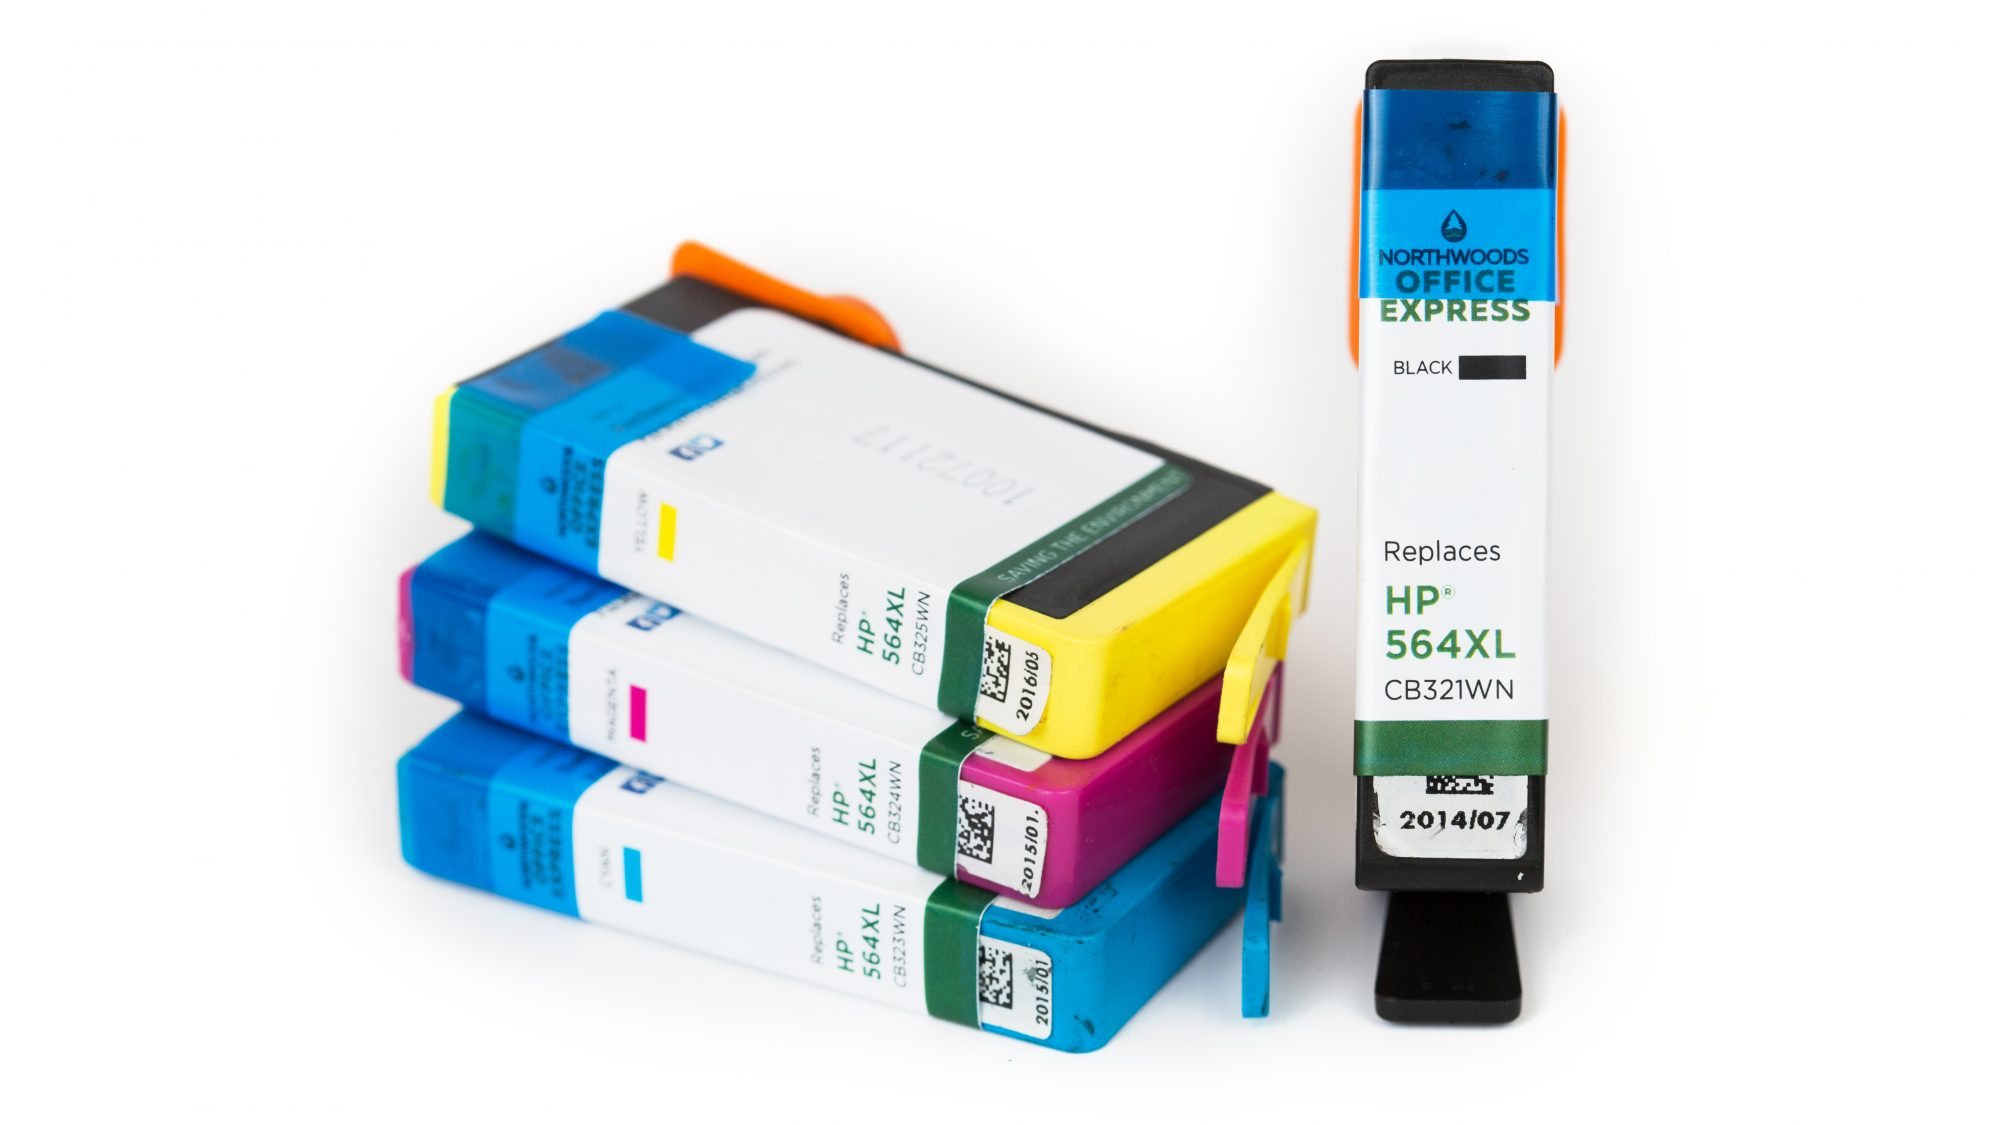 Northwoods Office Express - Remanufactured Ink Cartridges